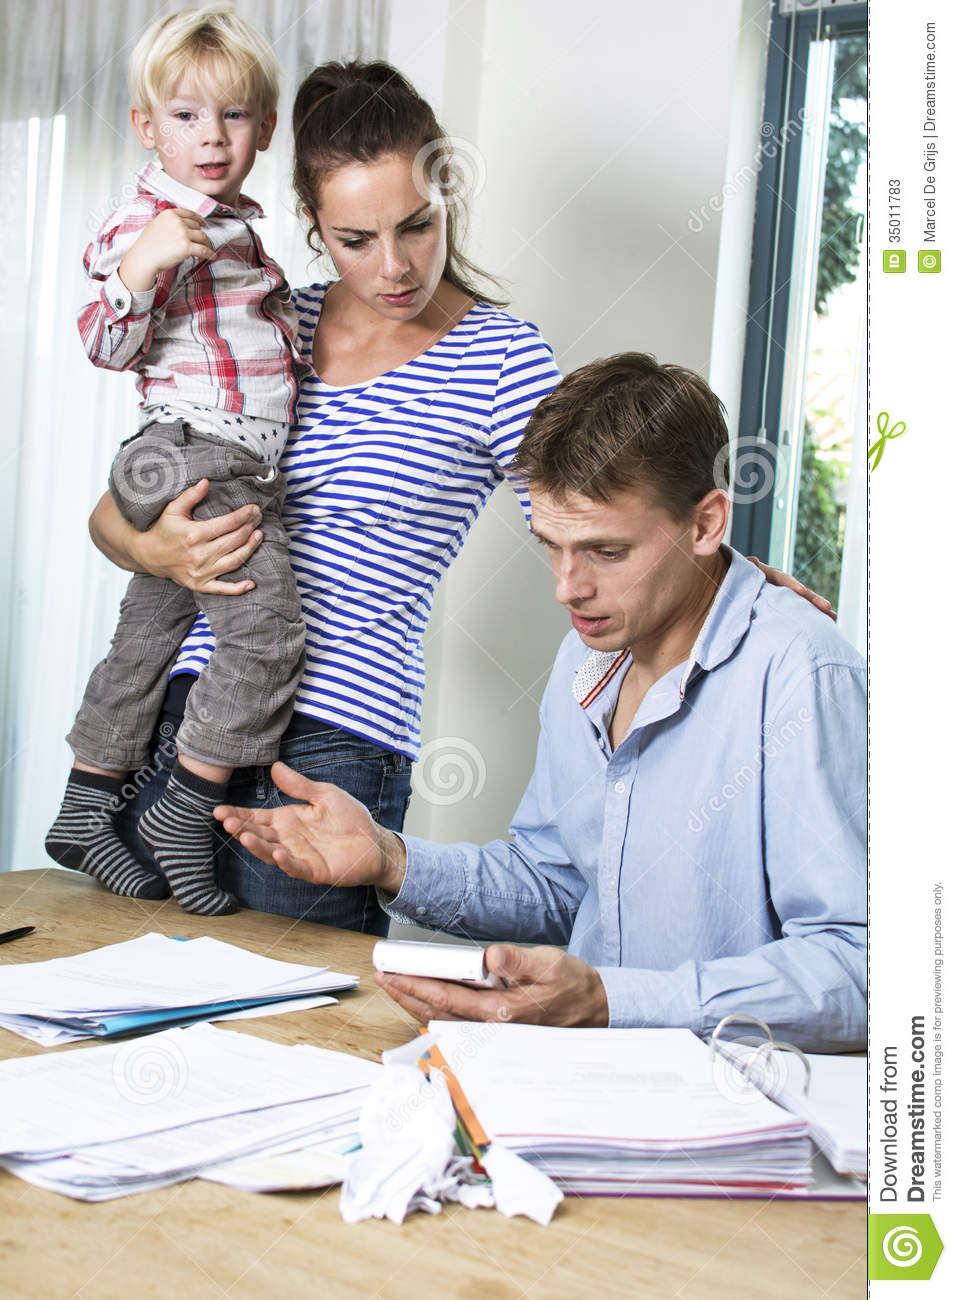 2 725 Family Financial Problems Photos Free Royalty Free Stock Photos From Dreamstime